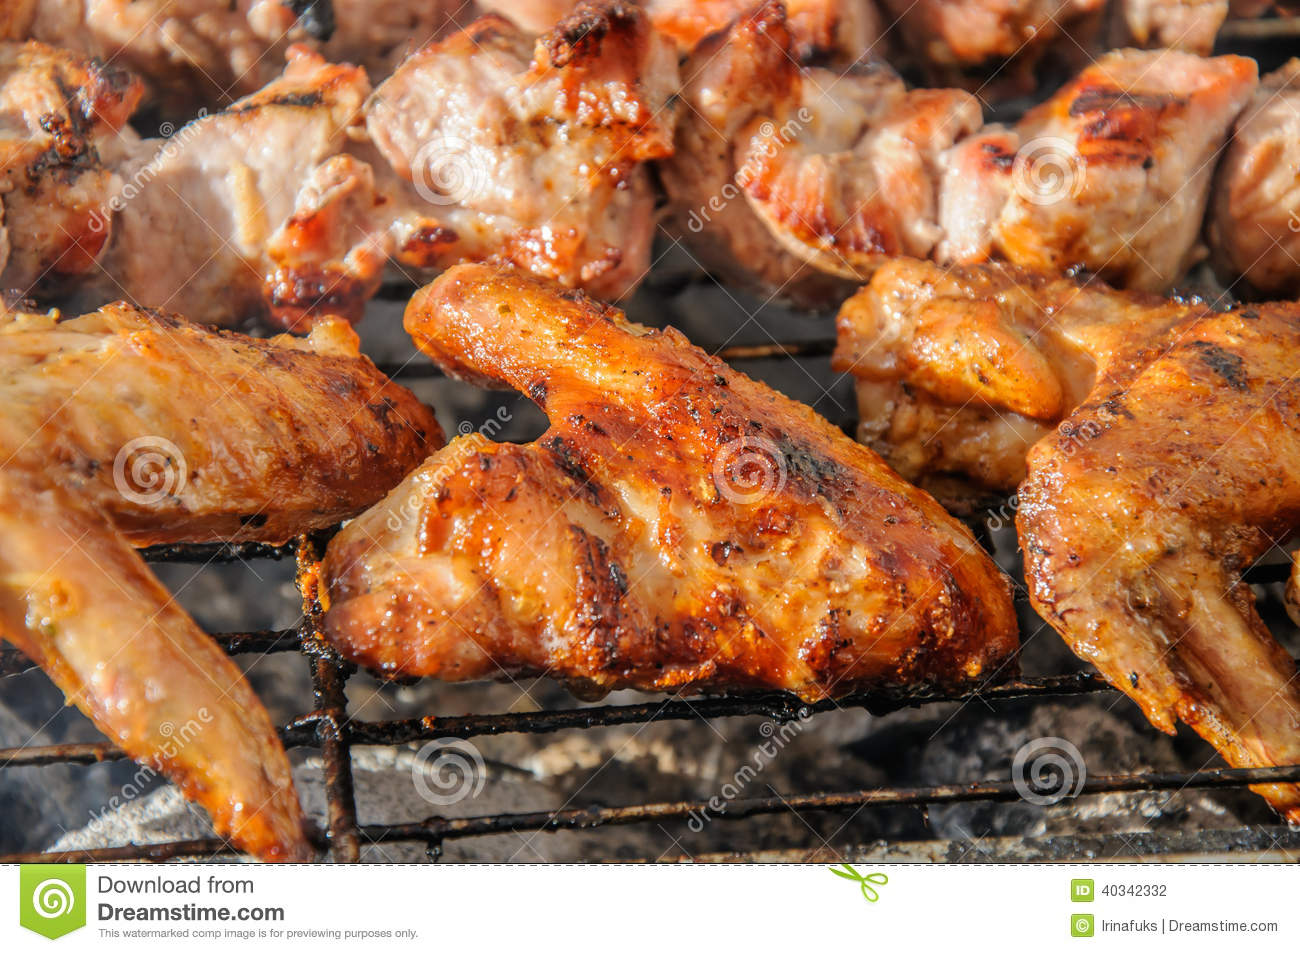 Chiken wings and Juicy roasted kebabs and on the BBQ